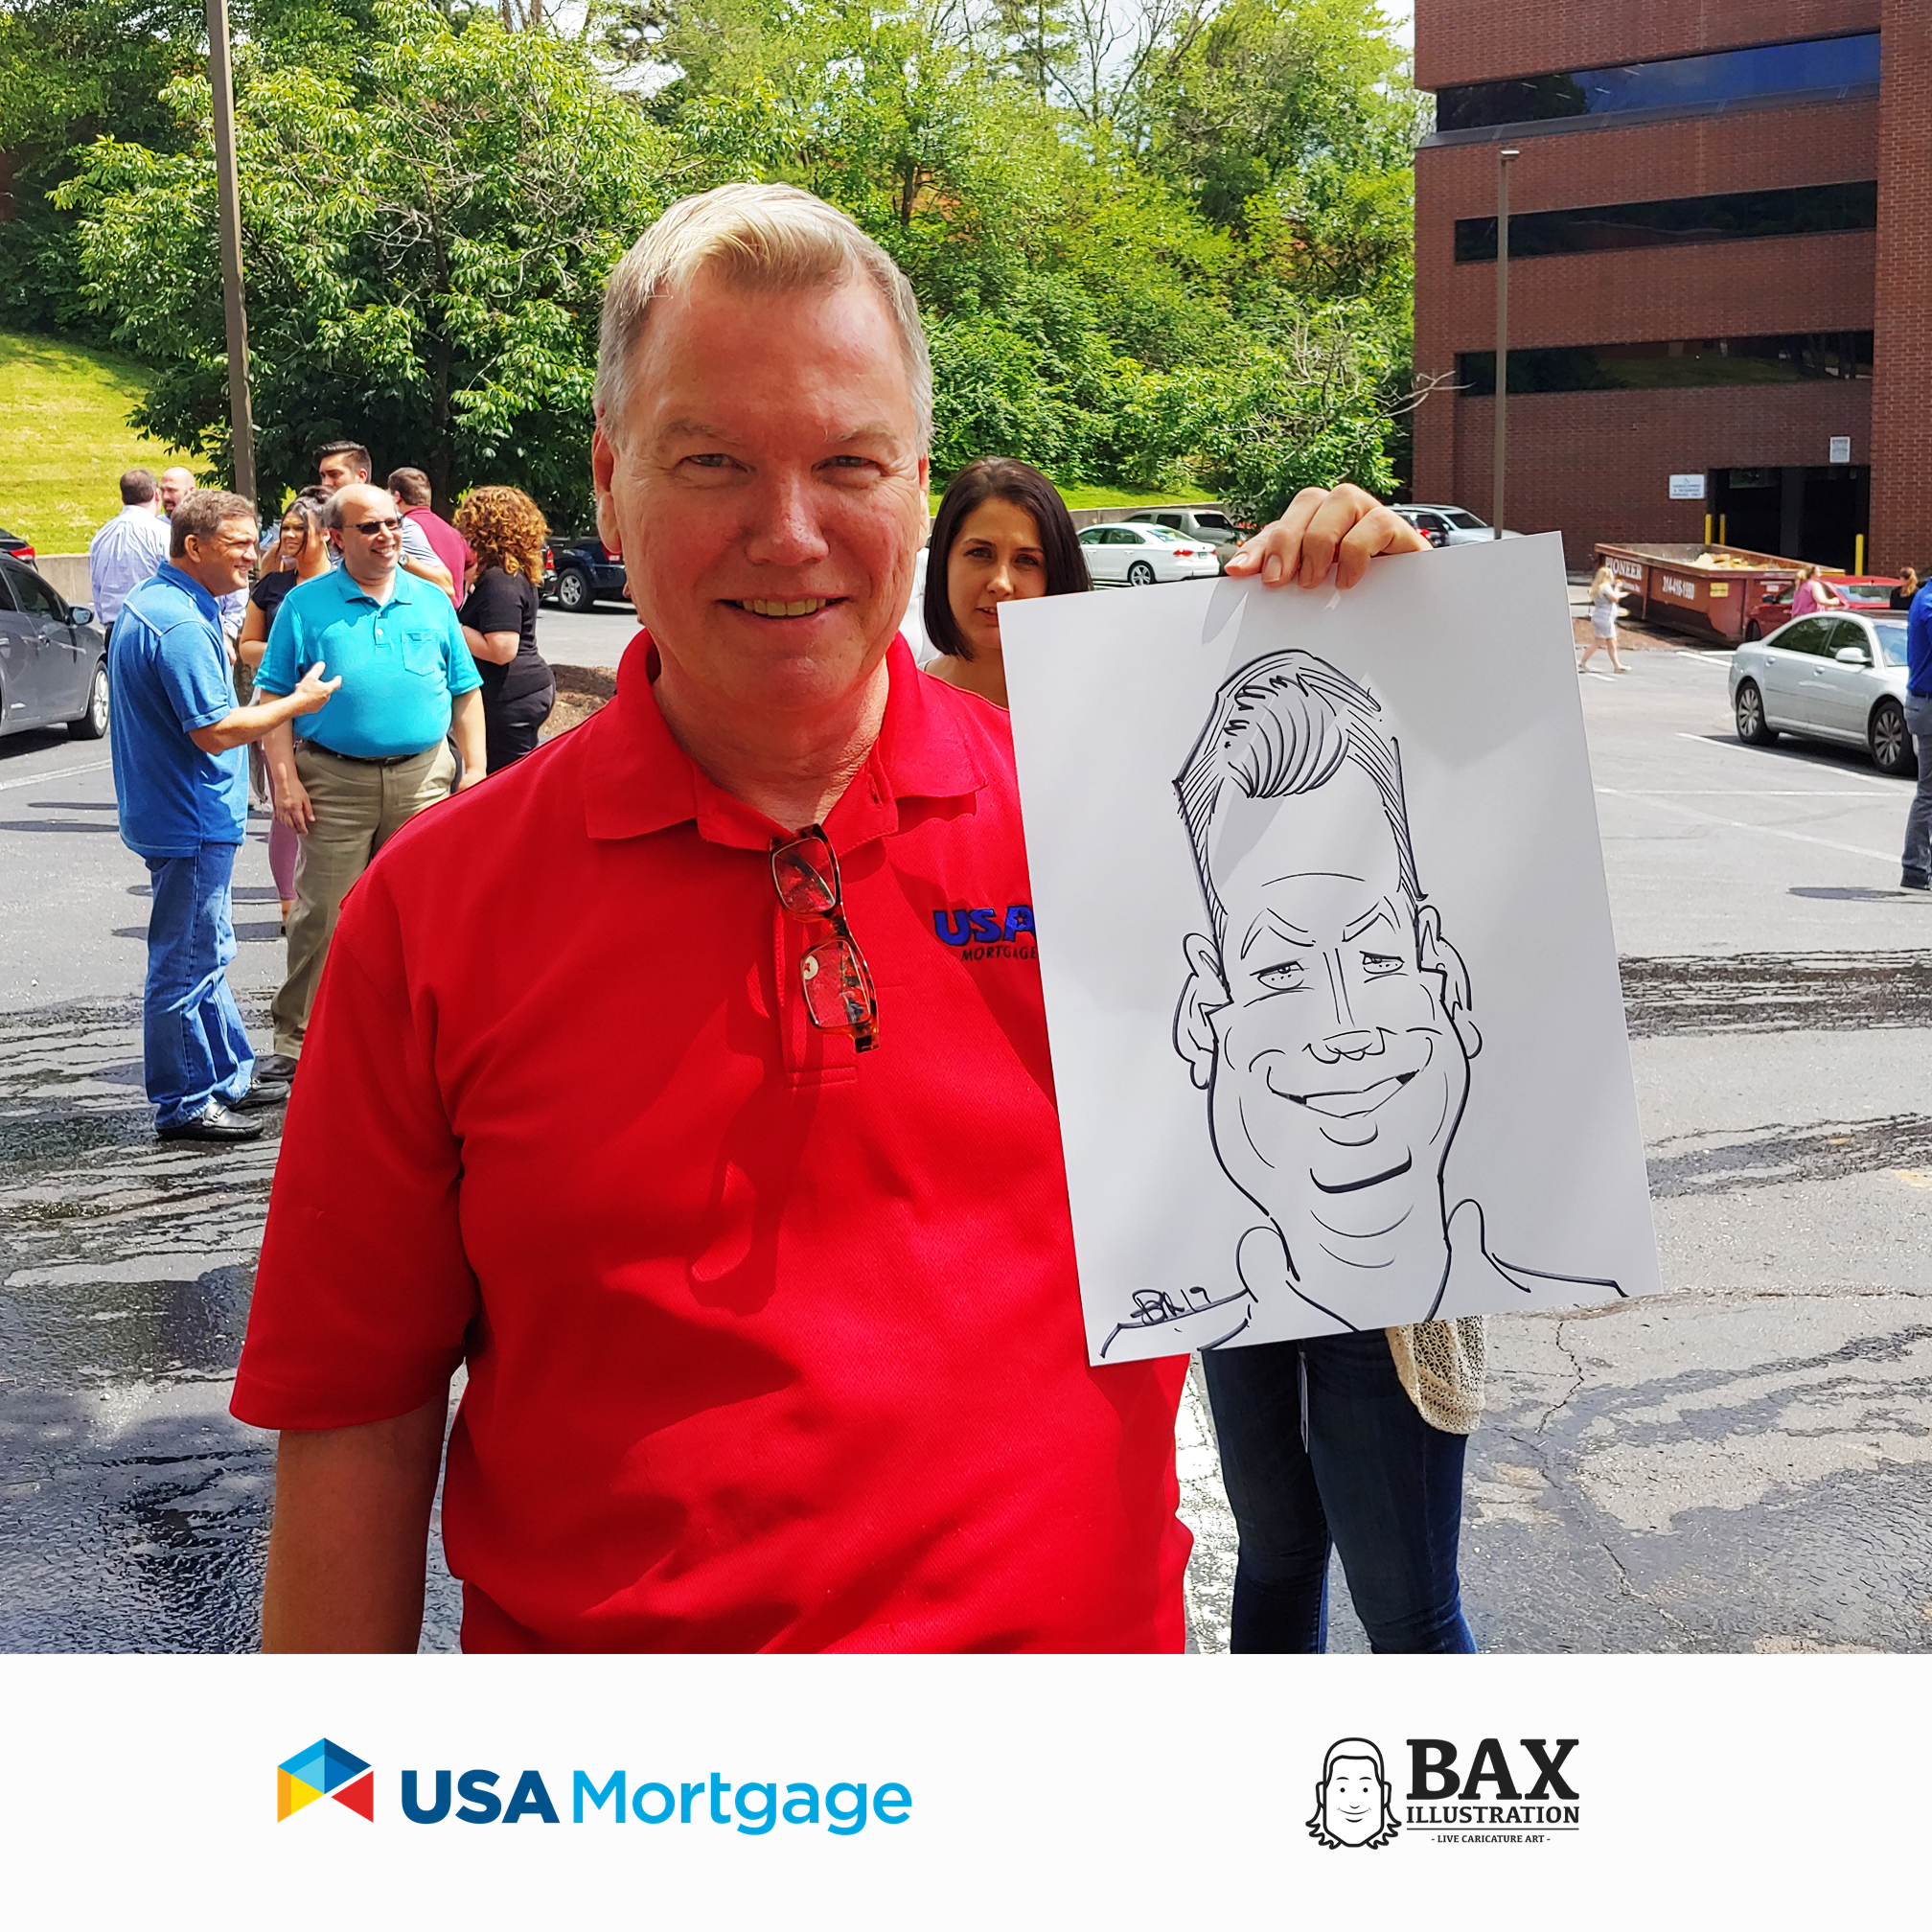 Man holding caricature by Bax Illustration at a USA Mortgage event in St. Louis, Missouri